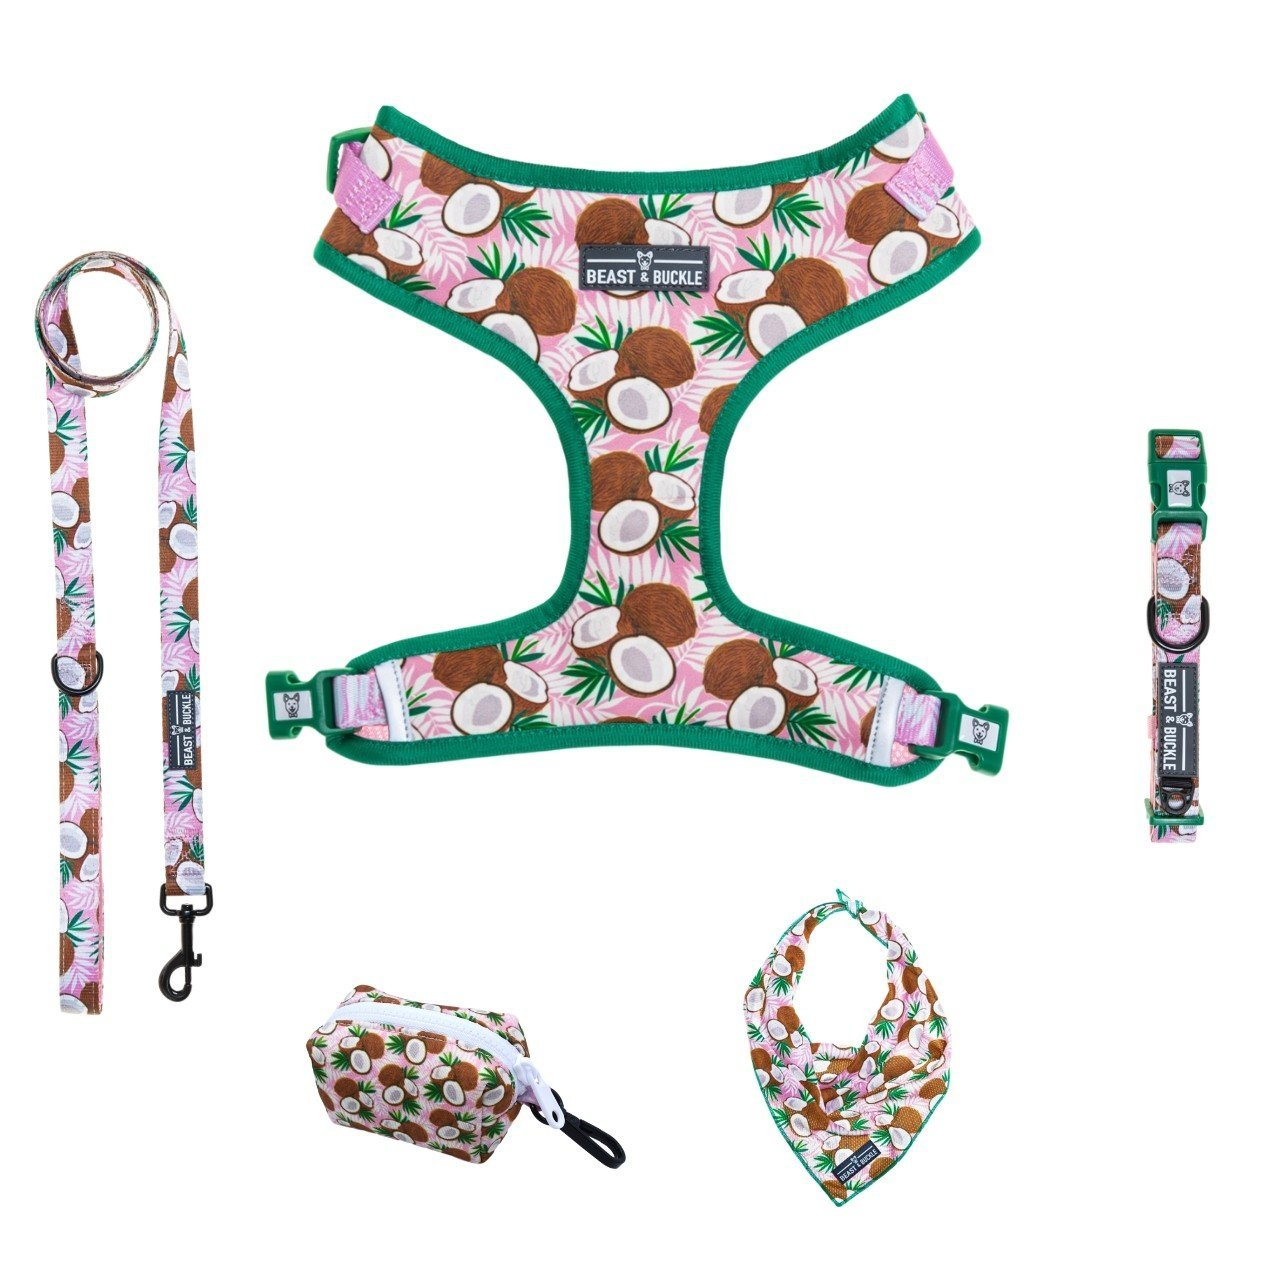 Coconut Adjustable Harness Collection Bundle - Beast & Buckle